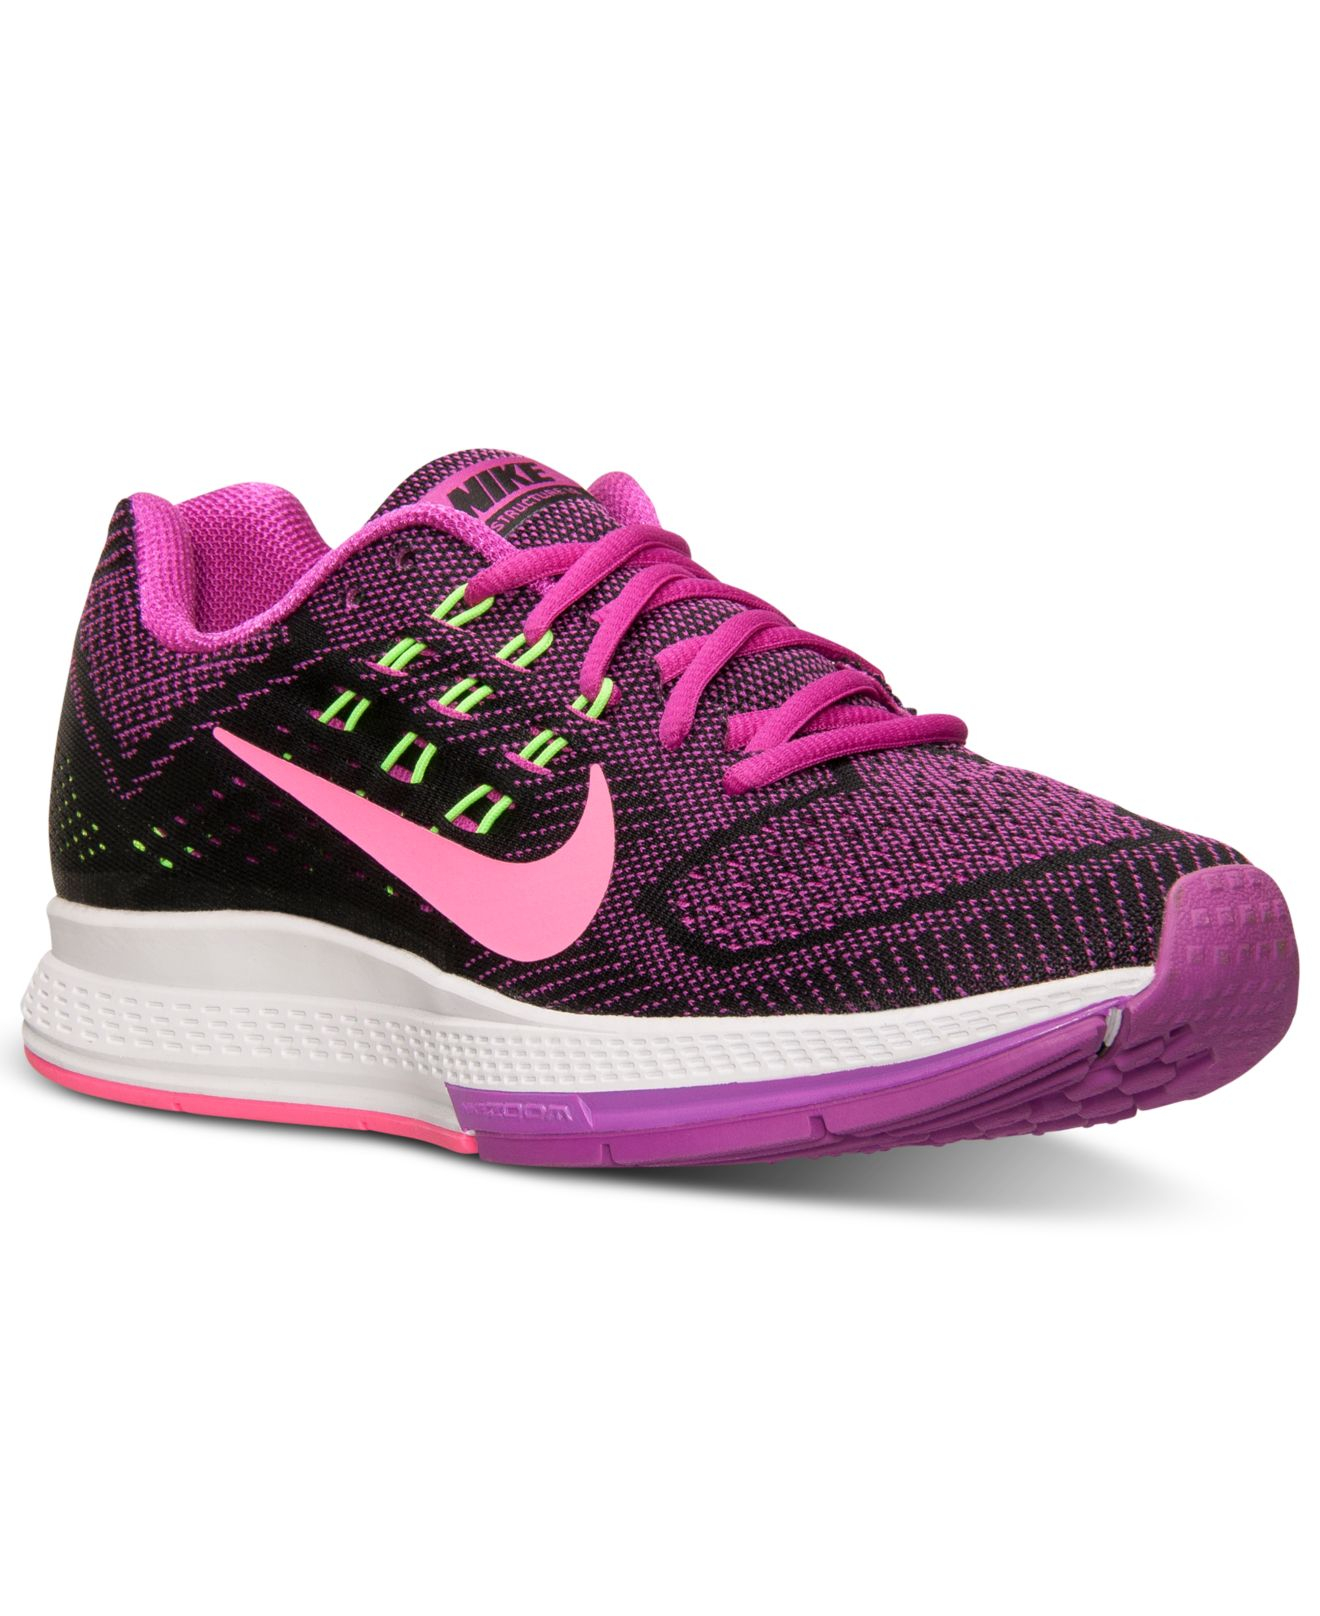 timeless design a0a86 df3f0 nike zoom structure 18 purple black